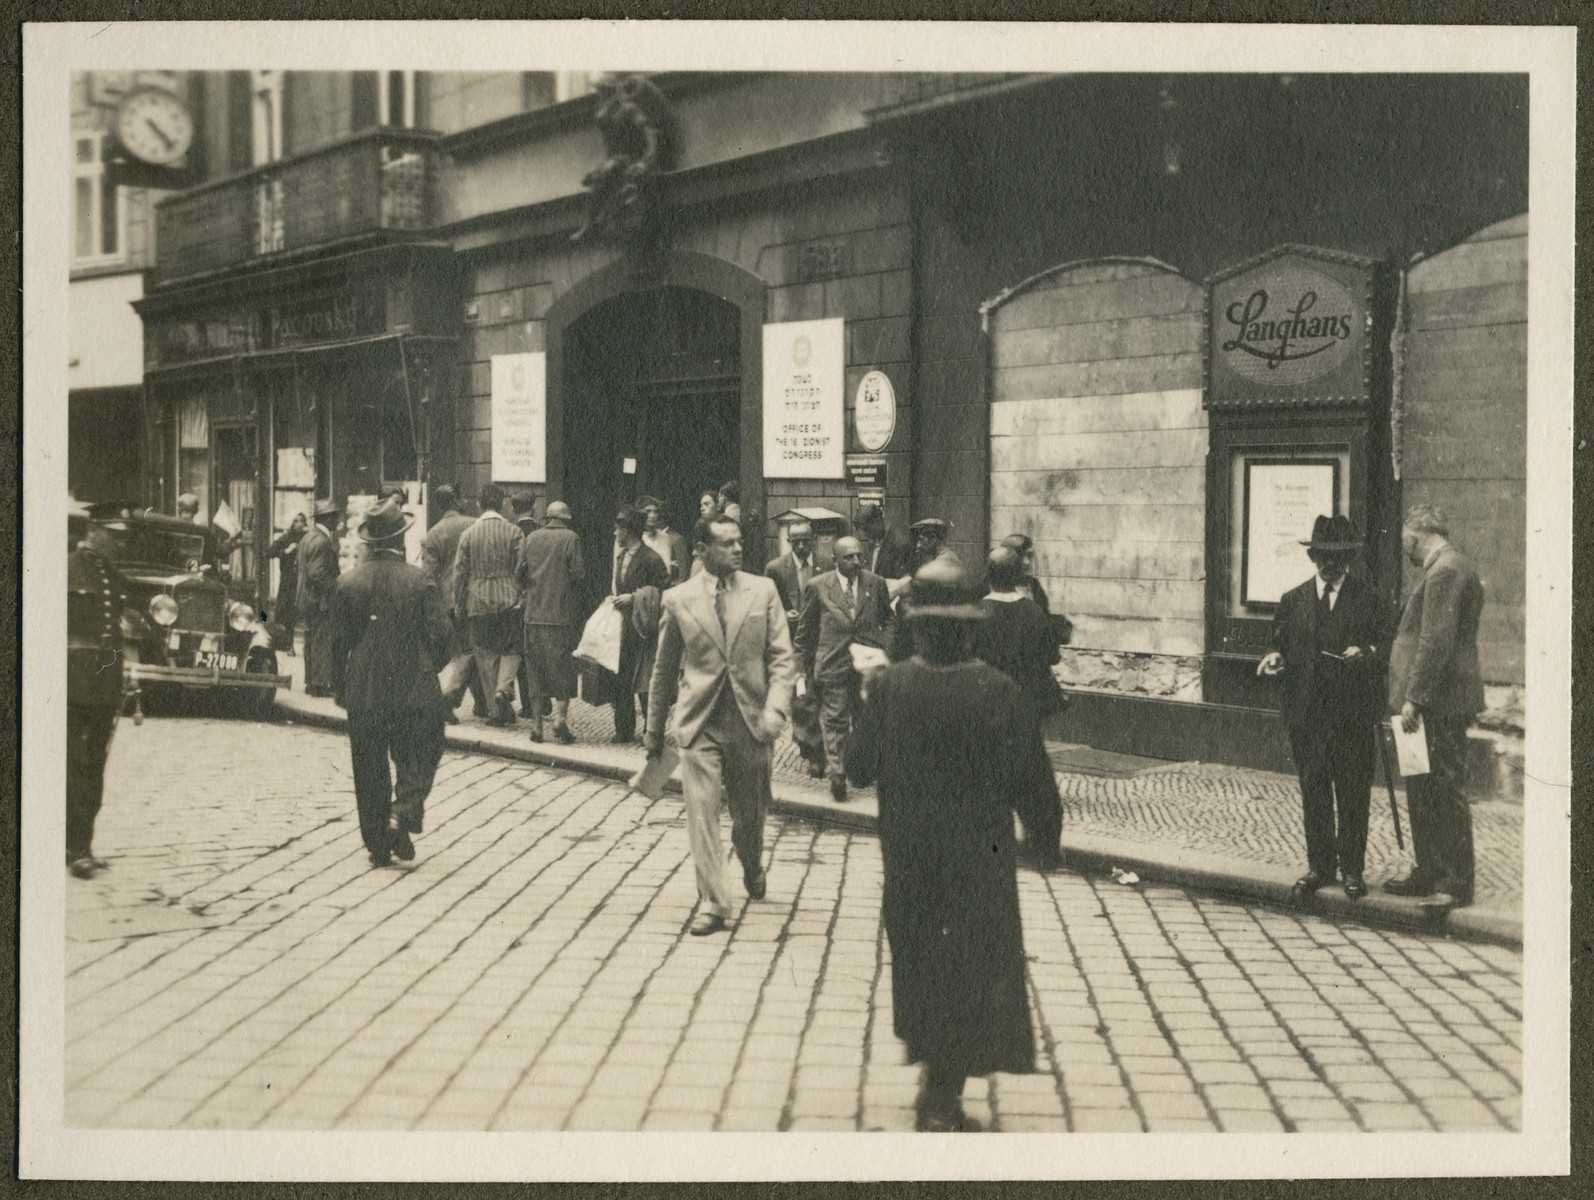 Men and women walk down a commercial street probably during the 18th Zionist Congress.